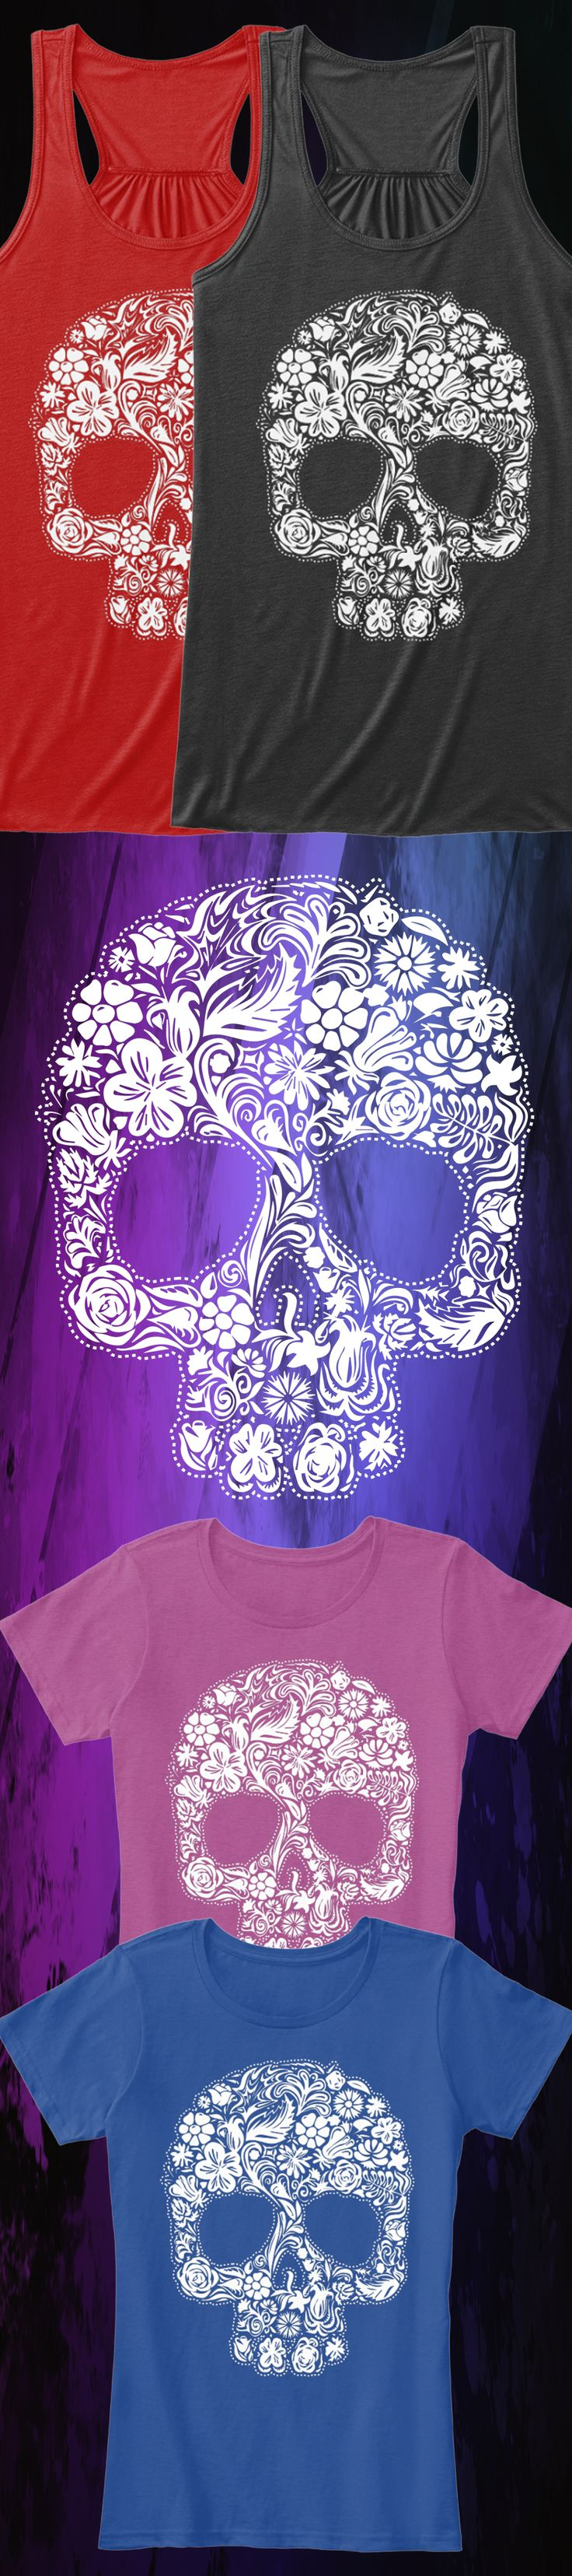 Shugar Skull - Limited Edition. Only 2 days left for FREE SHIPPING, grab yours or gift it to a friend. You will both love it